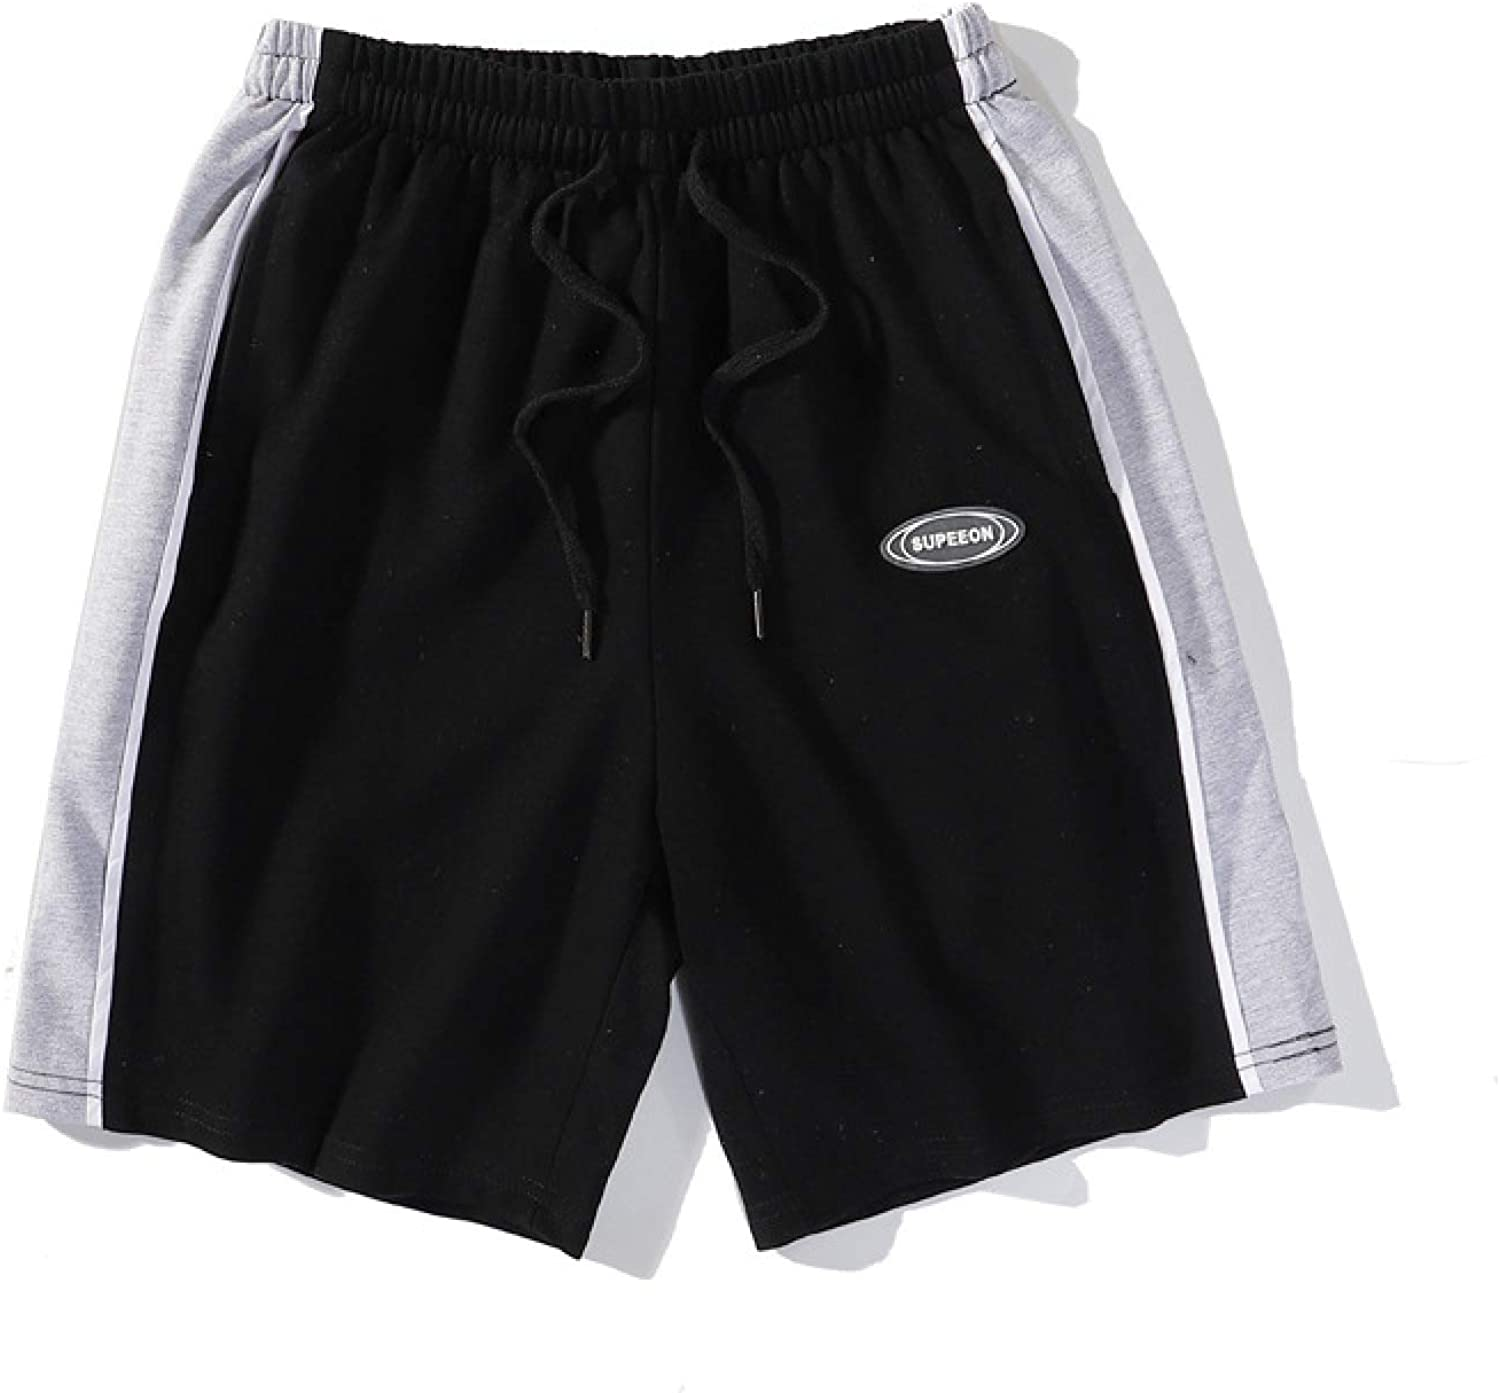 Wantess Men's Fitness It is very popular Shorts Summer Matching Loose Color Sacramento Mall Fashion